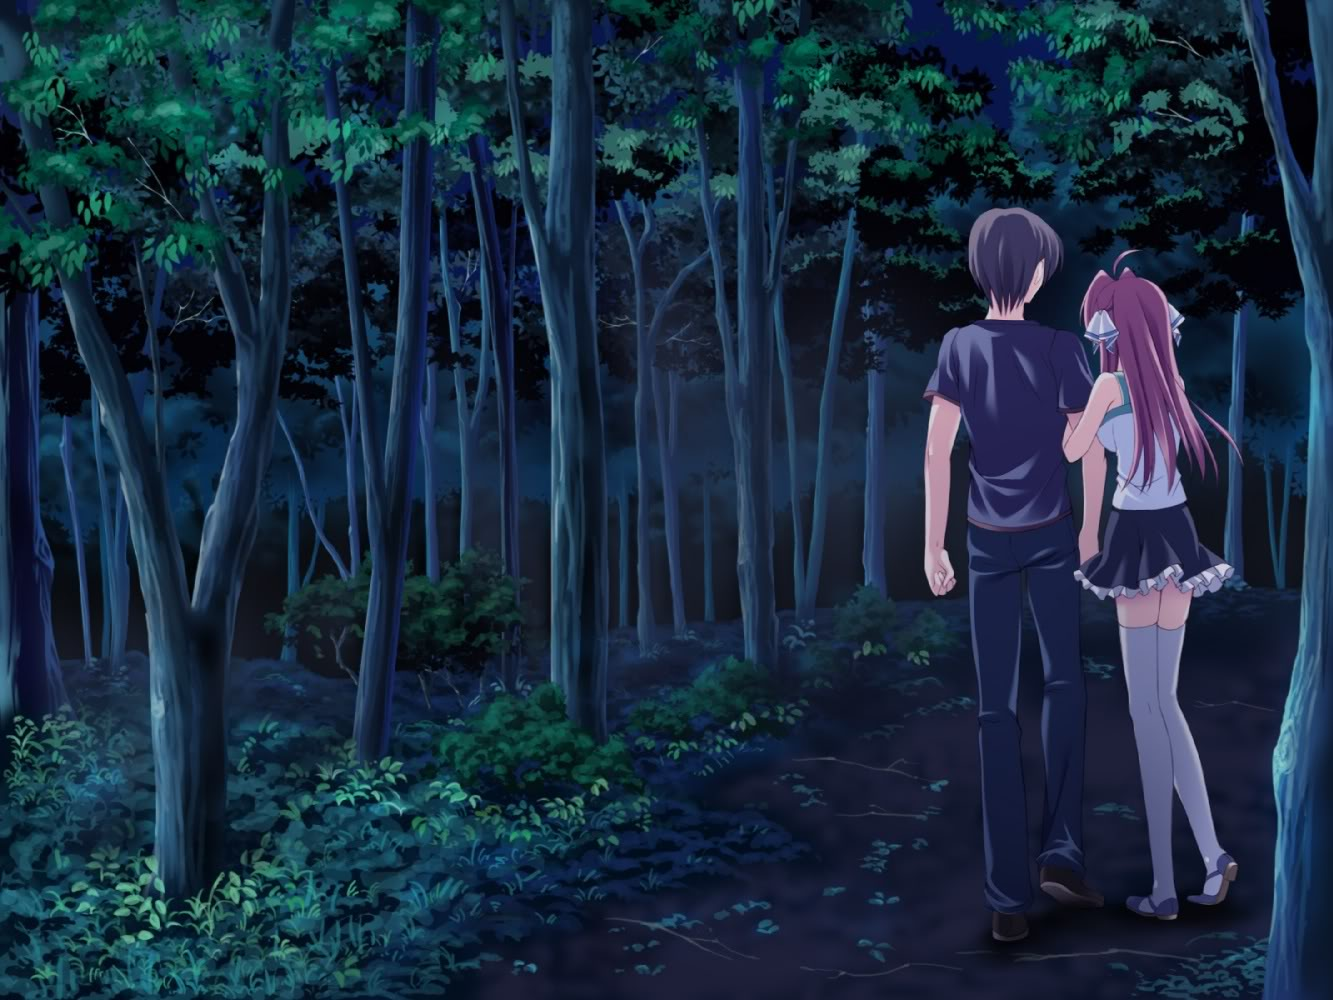 Love couple cool Wallpaper : Anime Sweet couple Wallpaper 1333x1000 Download wallpapers page